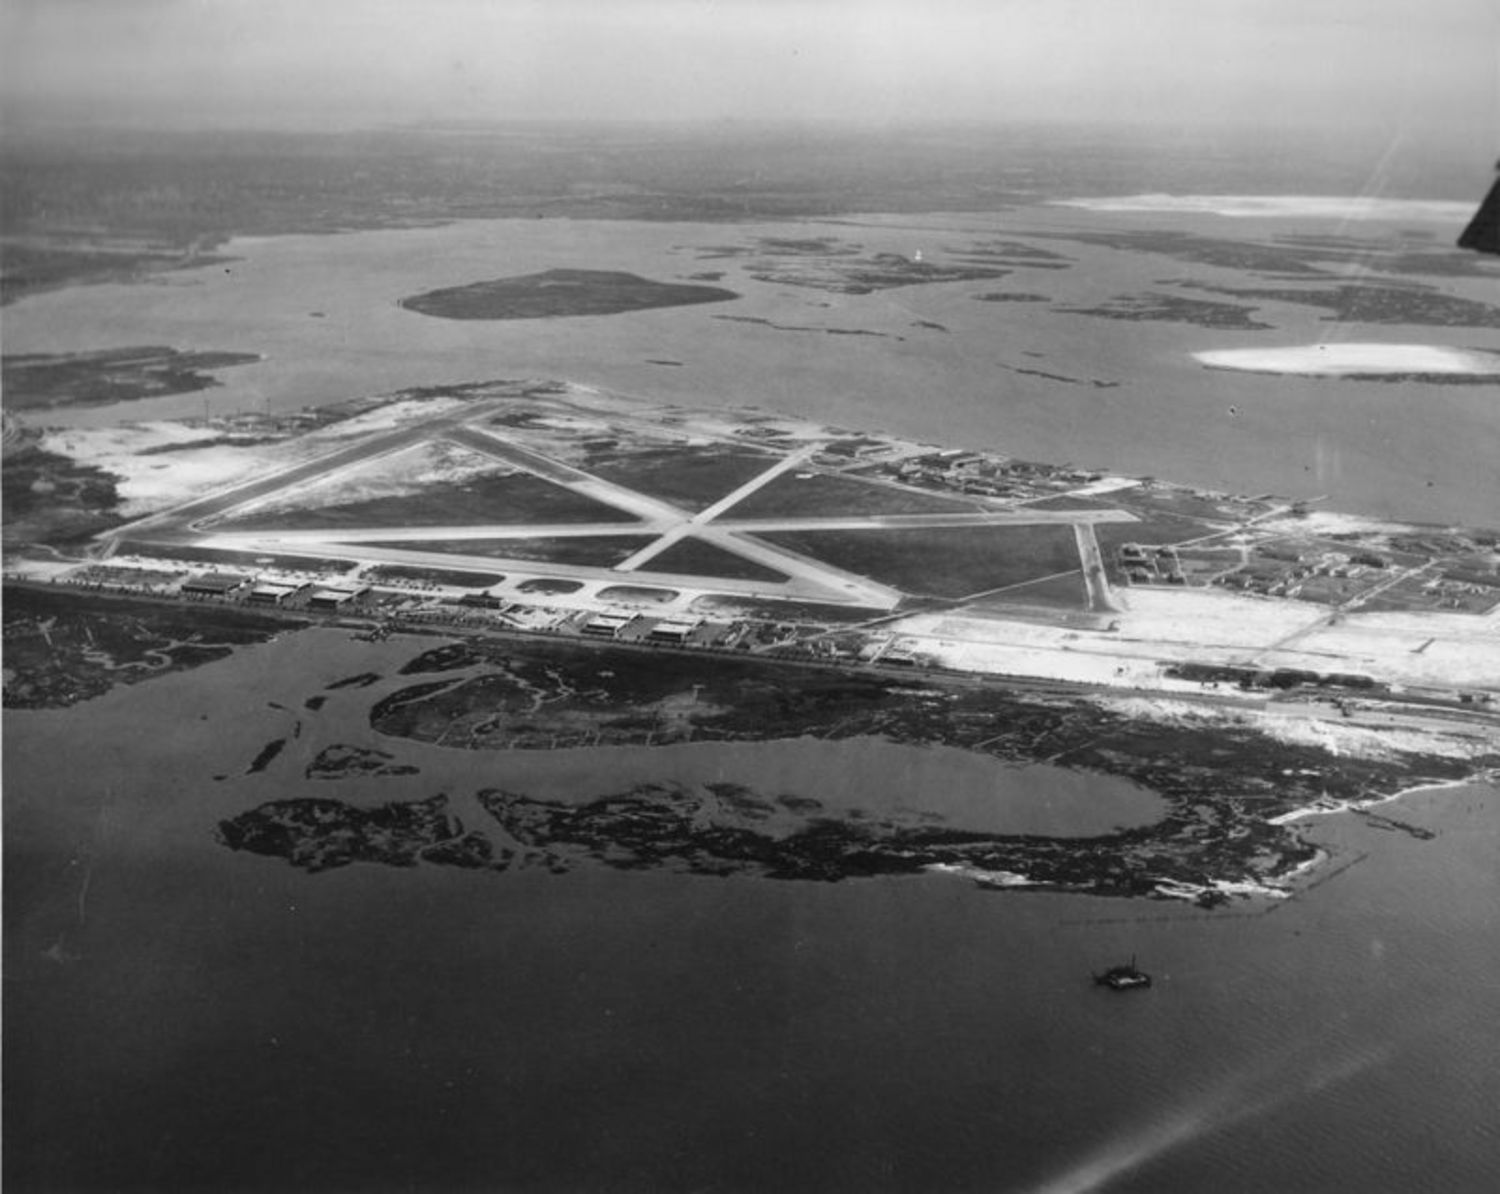 Aerial view of Floyd Bennett Field in the 1940s.